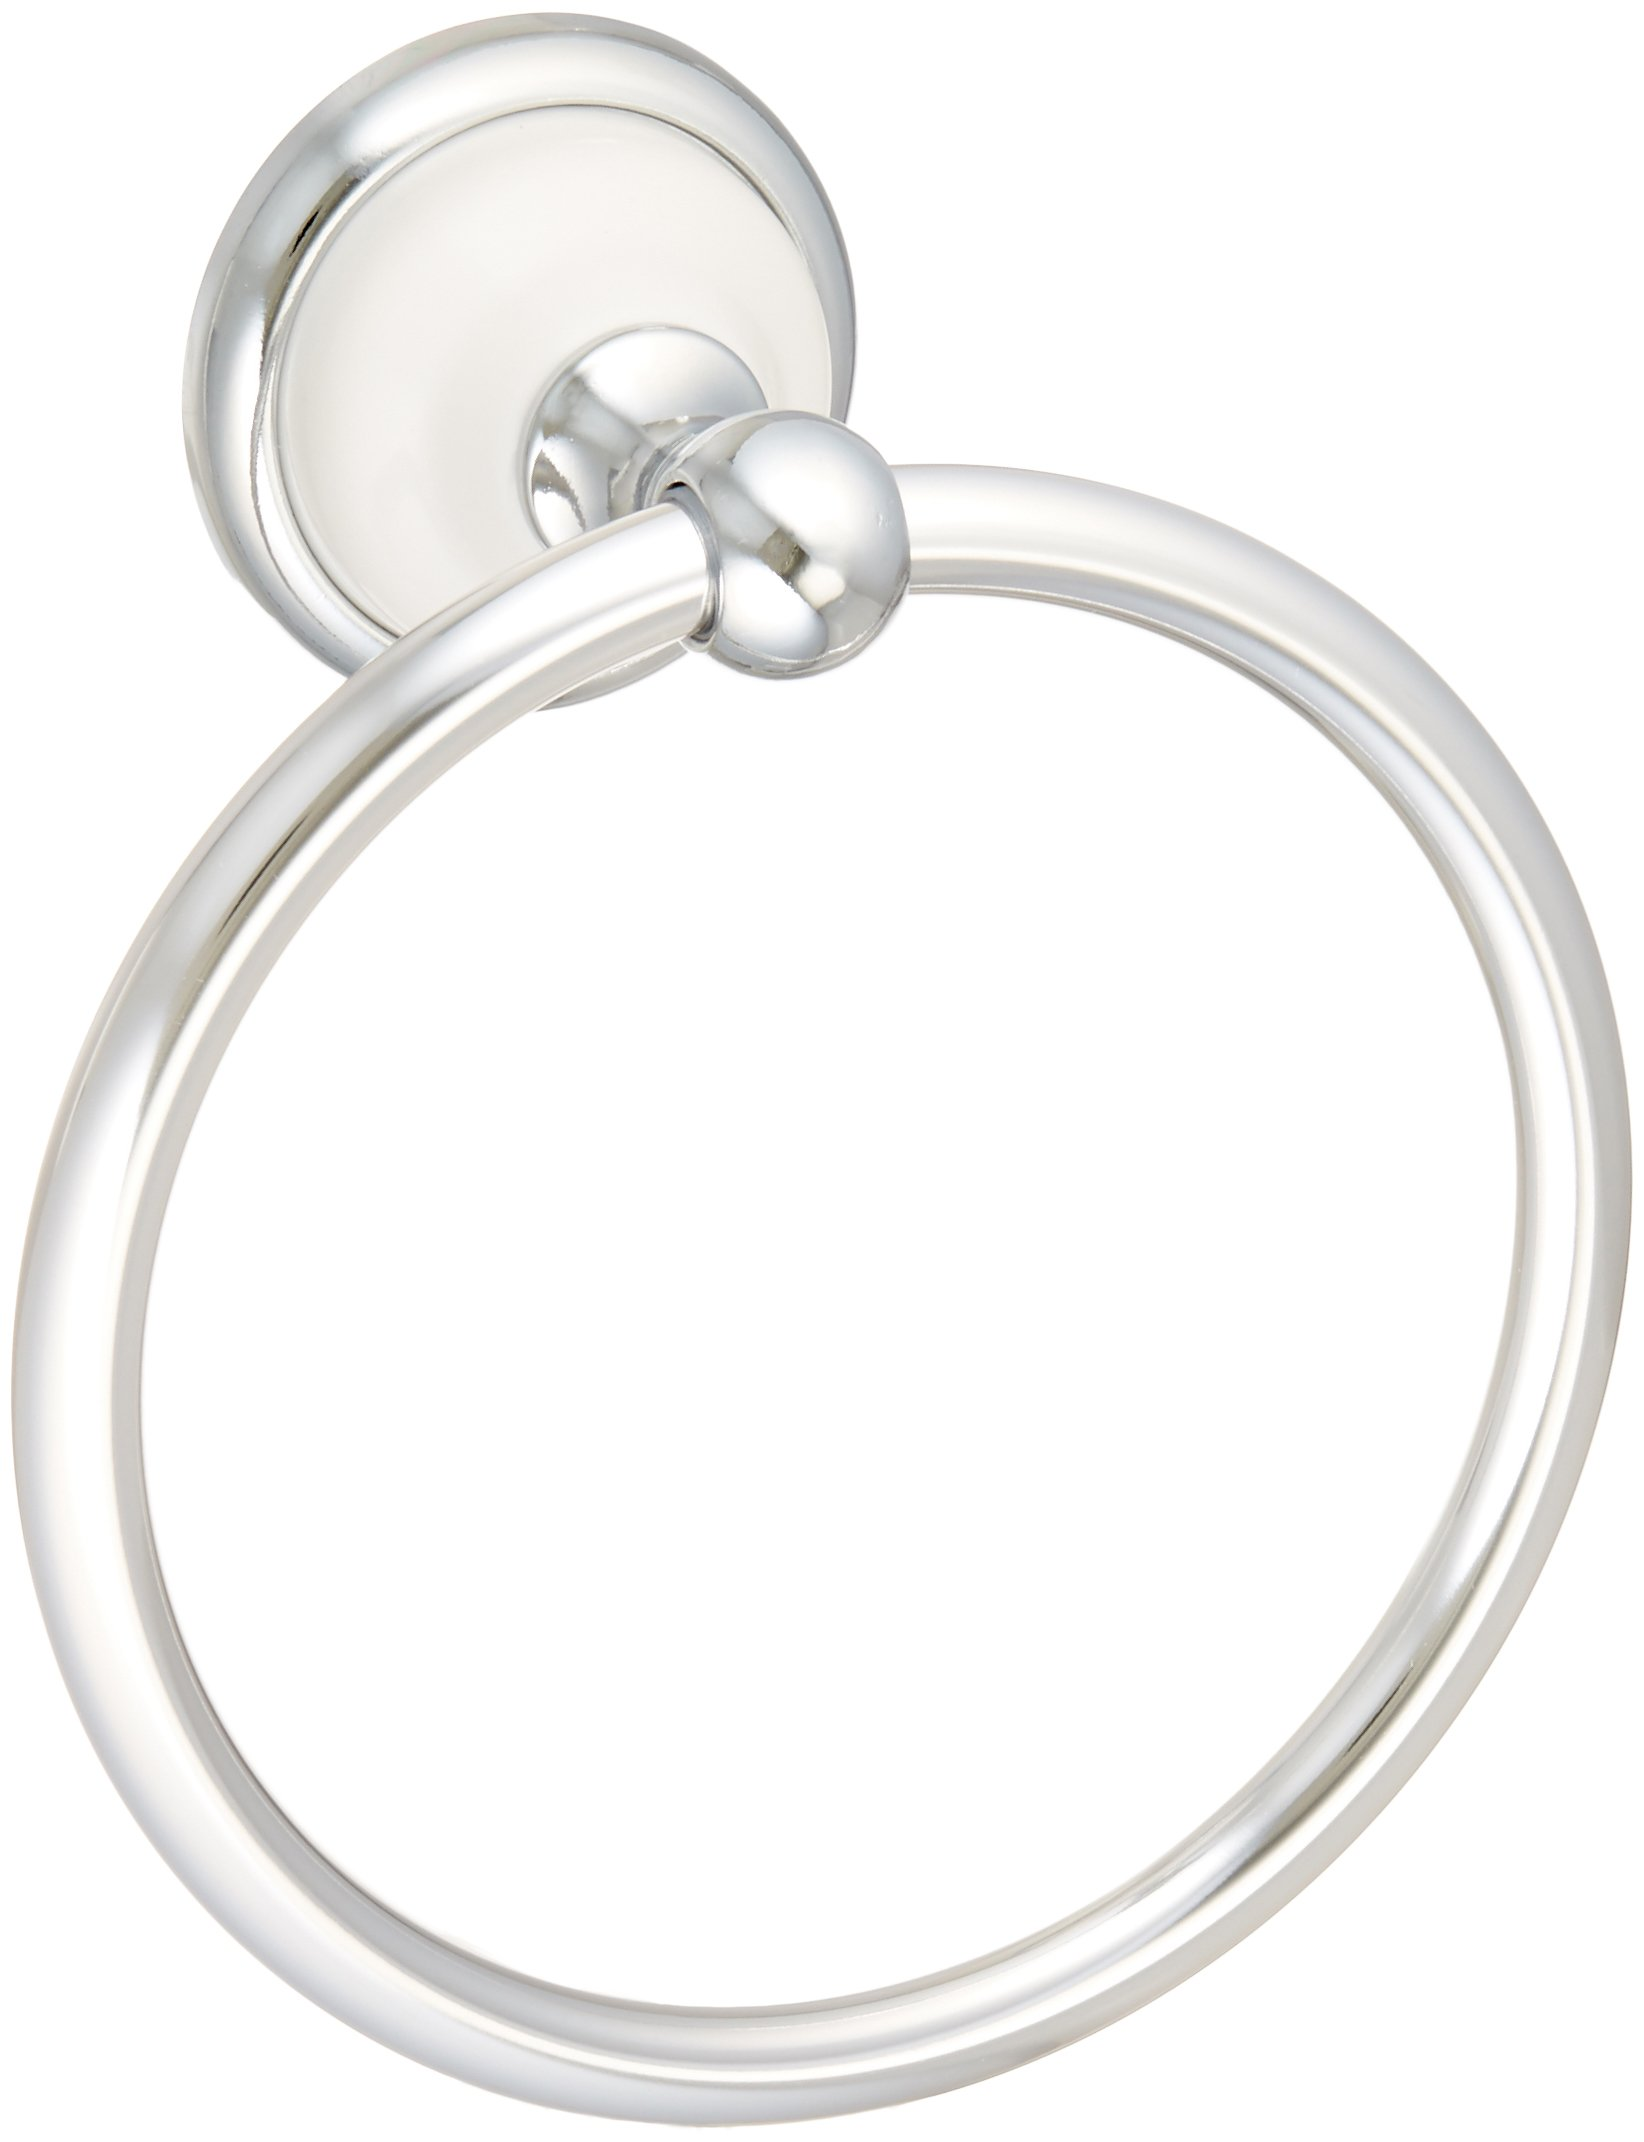 Franklin Brass  126882 Bellini Towel Ring, Polished Chrome & White by Franklin Brass